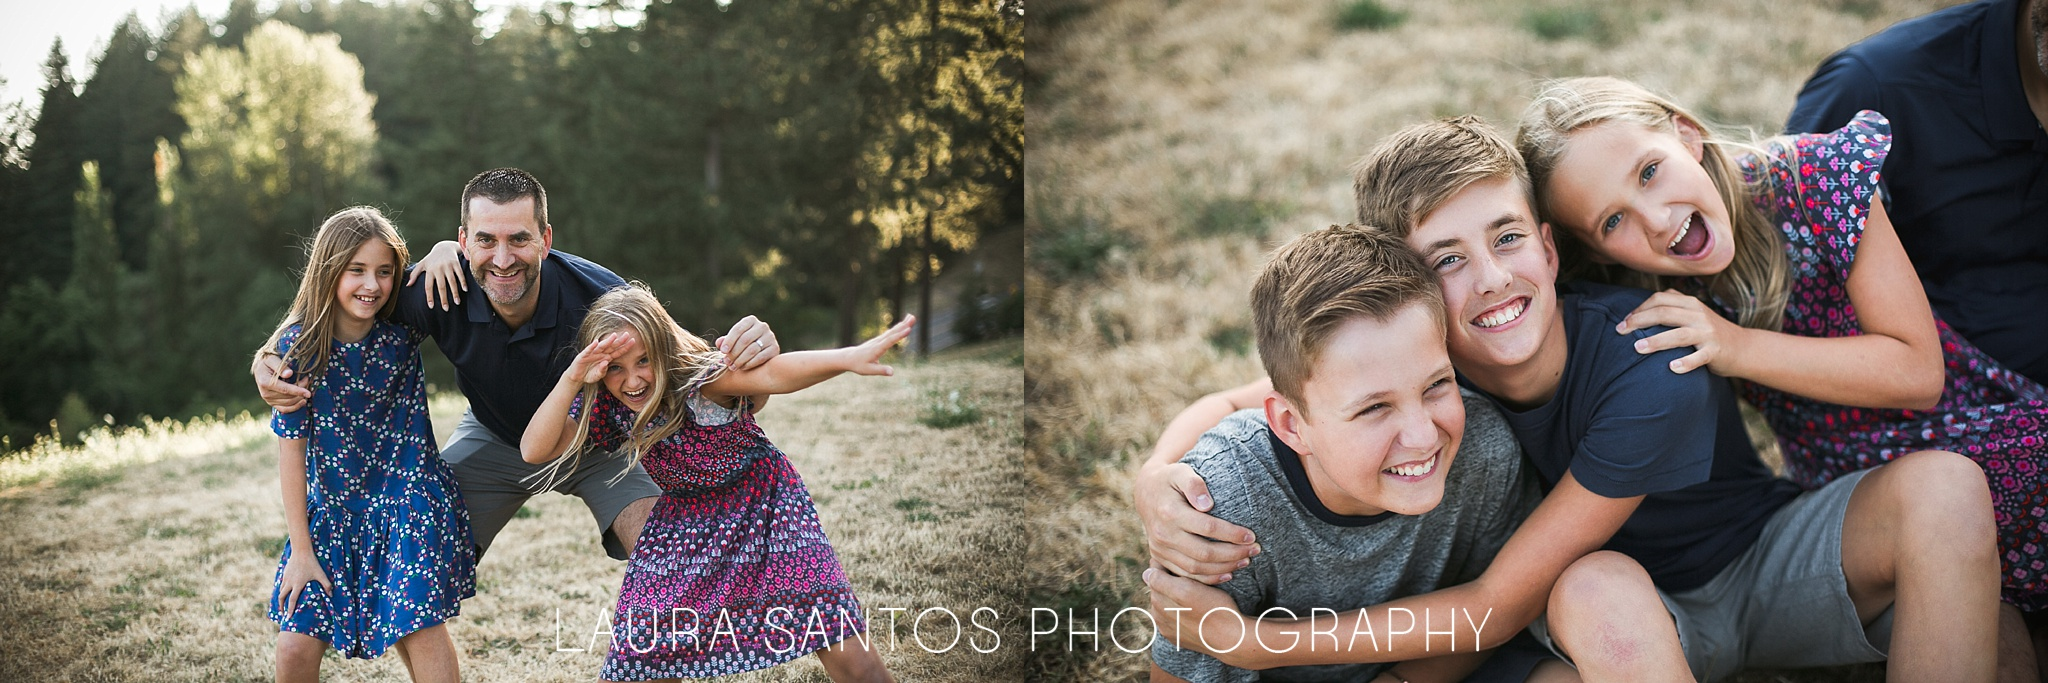 Laura Santos Photography Portland Oregon Family Photographer_0144.jpg